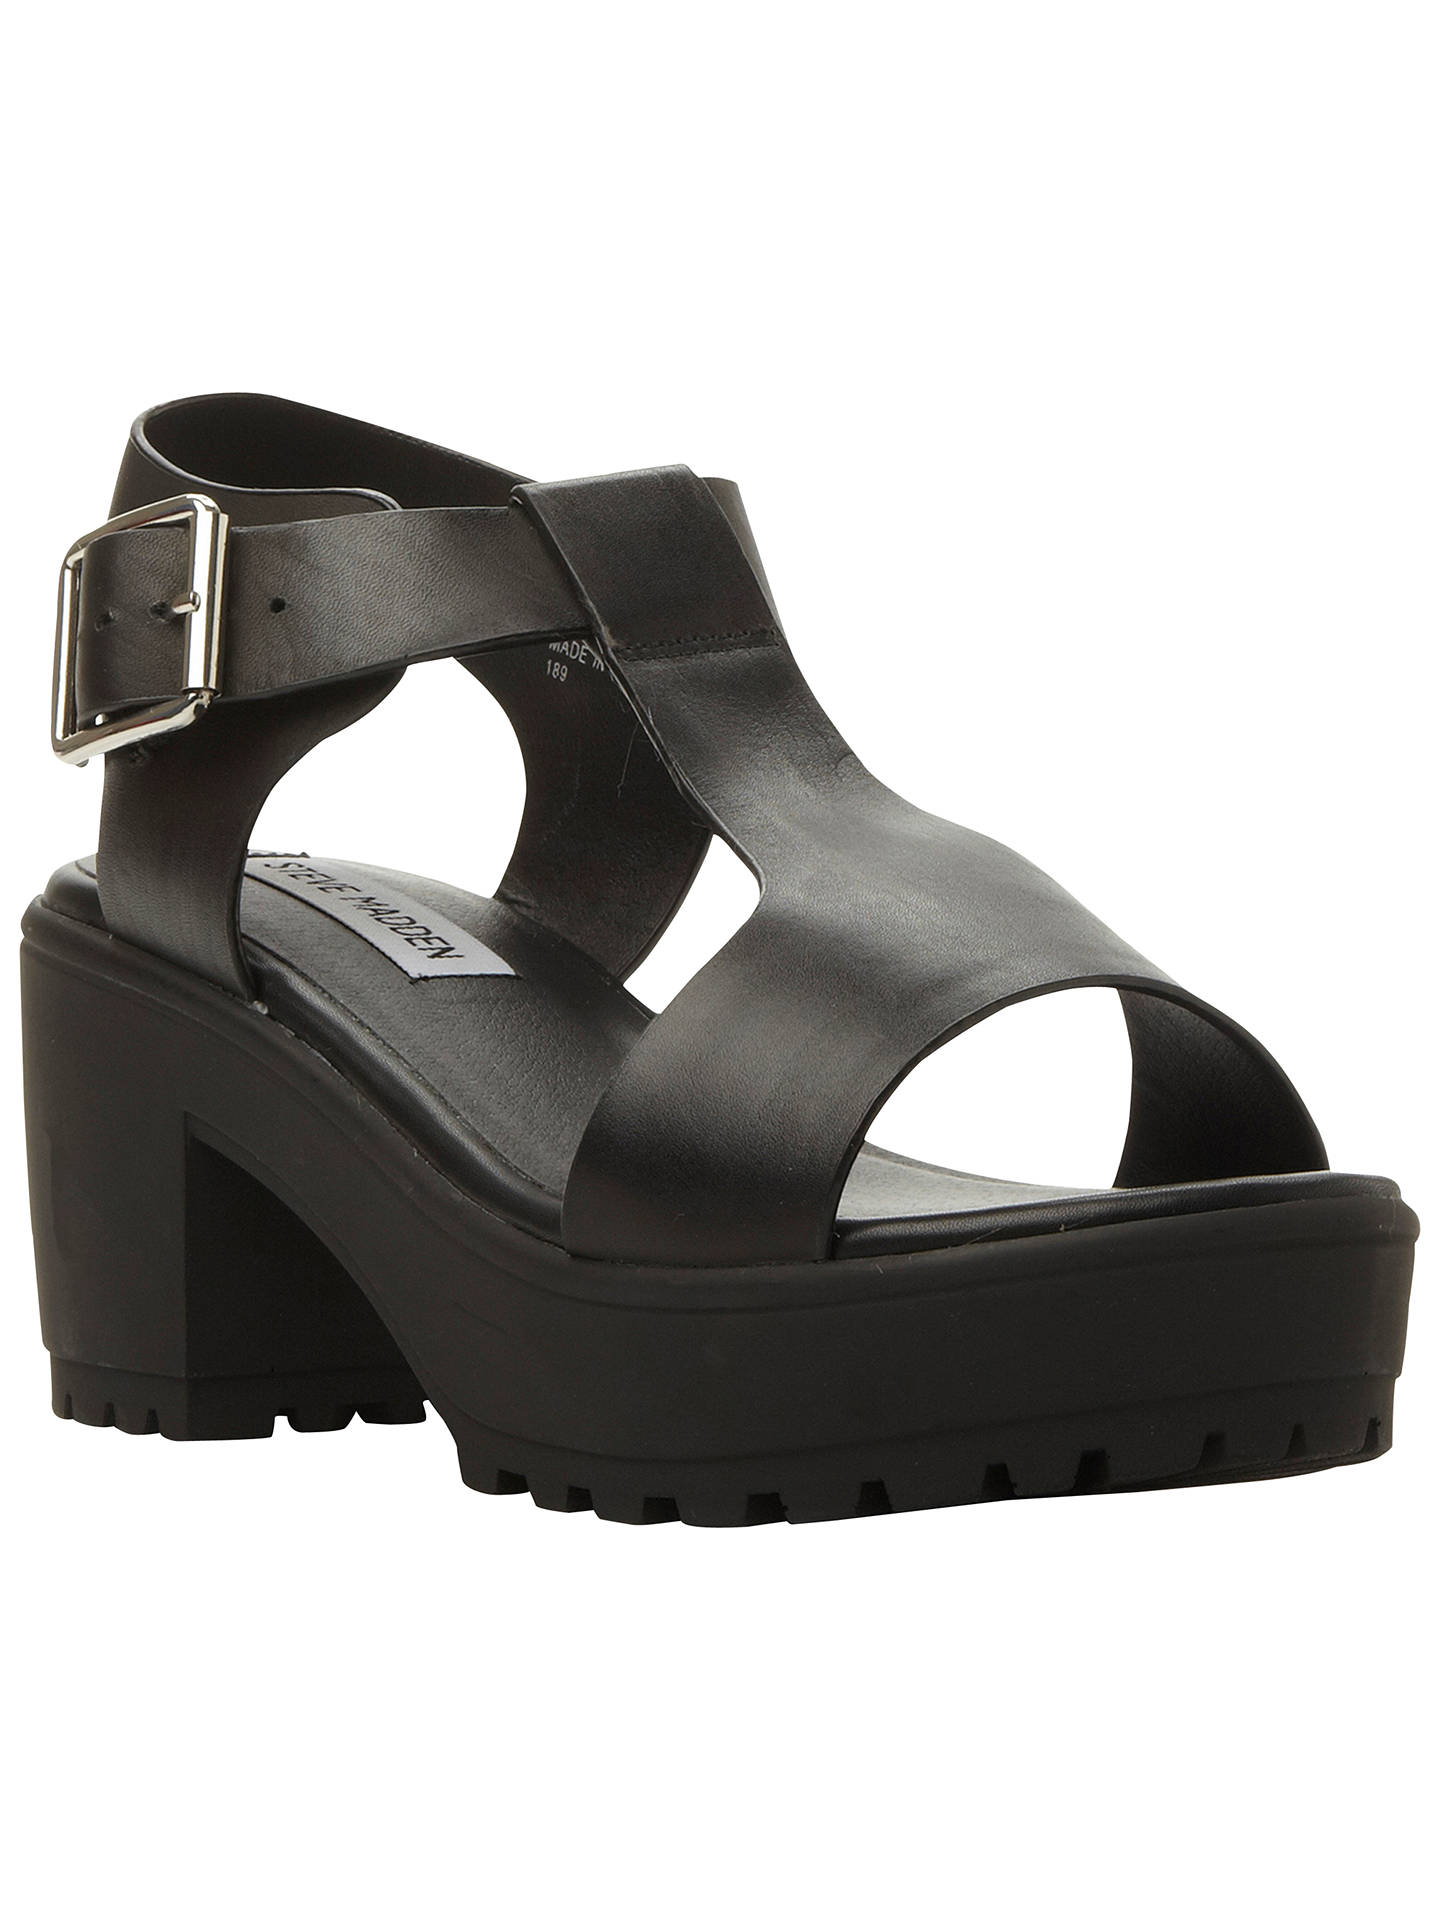 5a0f2f63459 Buy Steve Madden Stefano Chunky Leather T-Bar Sandals